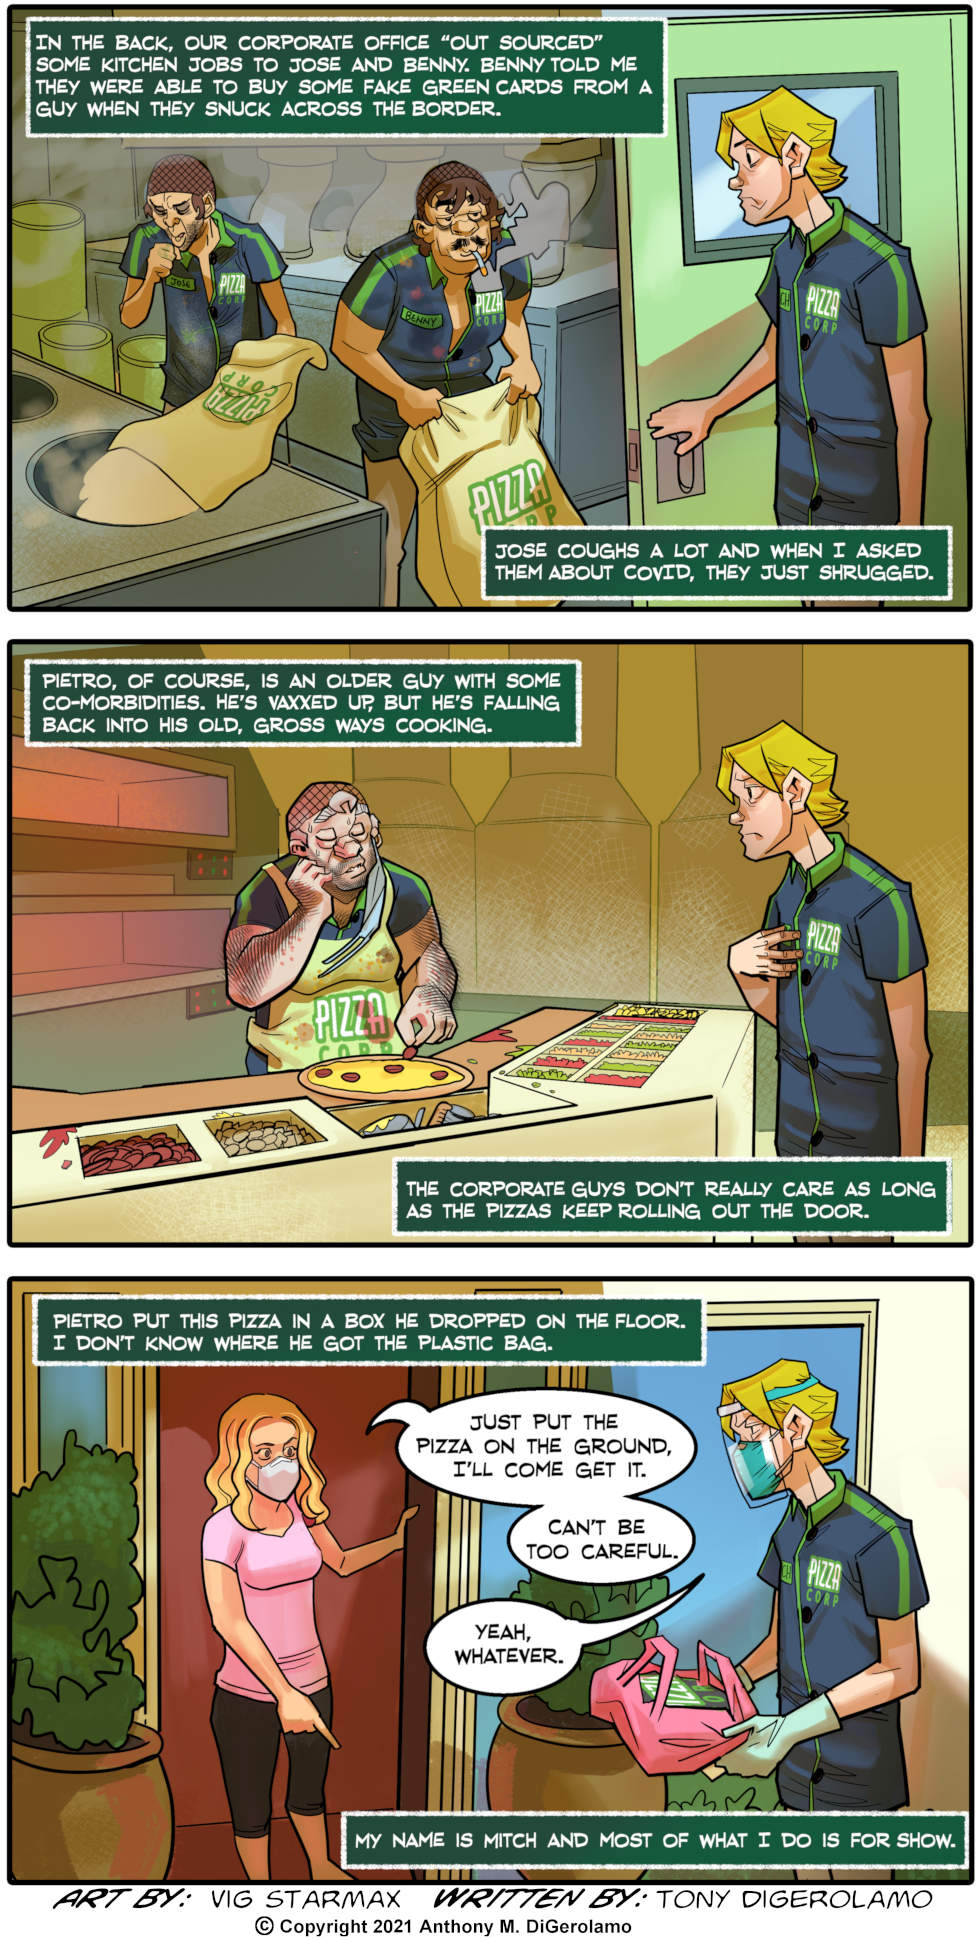 Tales of Pizza: Corporate Cleanliness